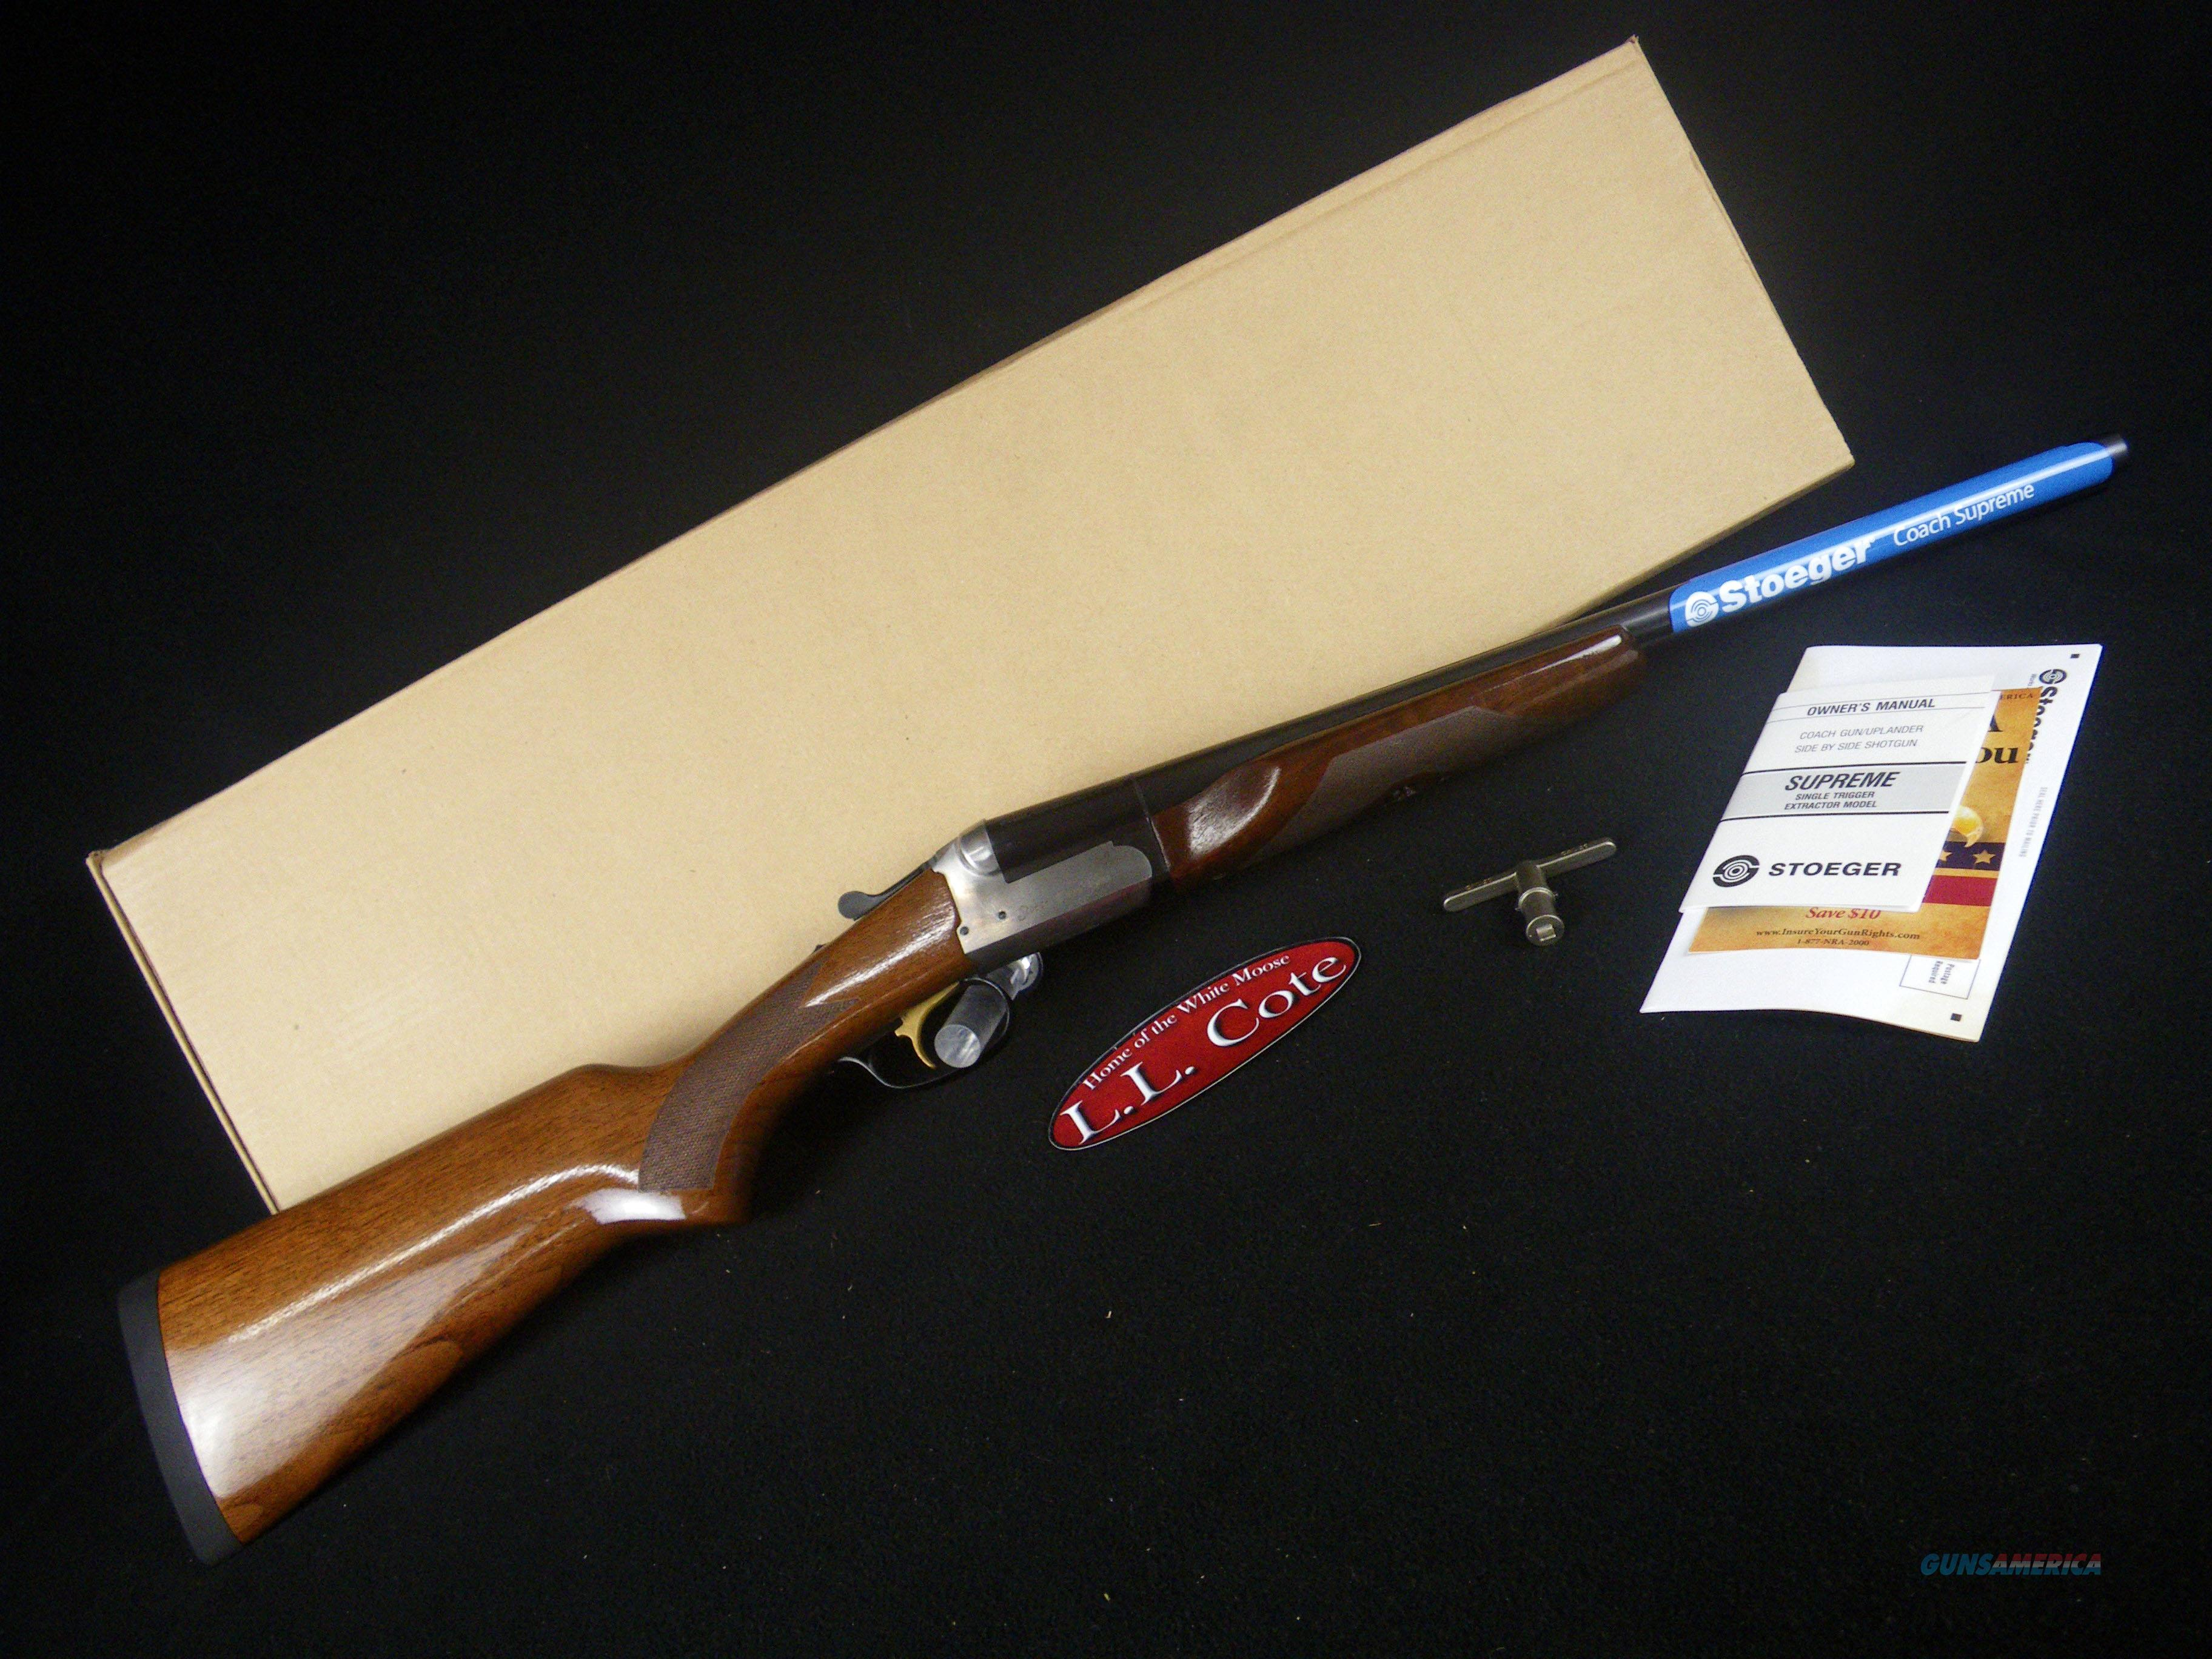 "Stoeger Coach Gun Supreme 12ga 20"" NEW 3"" 31463  Guns > Shotguns > Stoeger Shotguns"